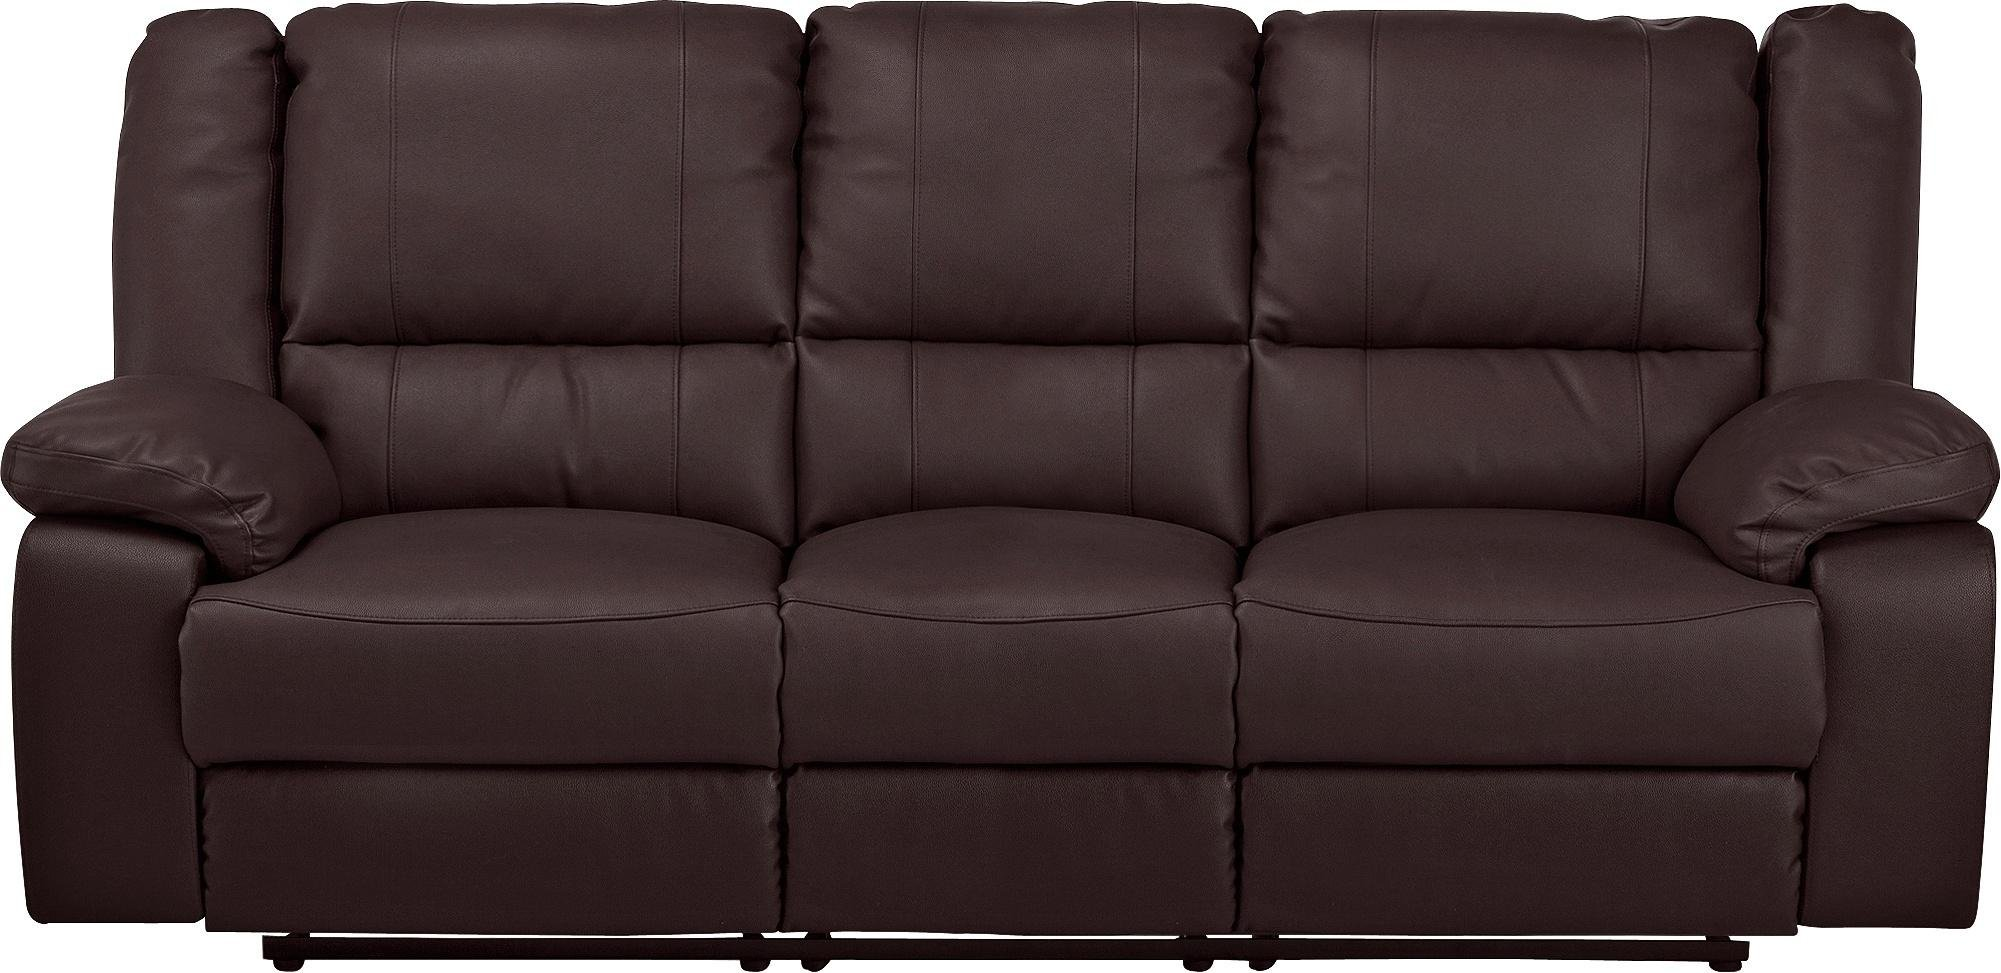 Argos Home Bruno 3 Seater Faux Leather Recliner Sofa - Brown